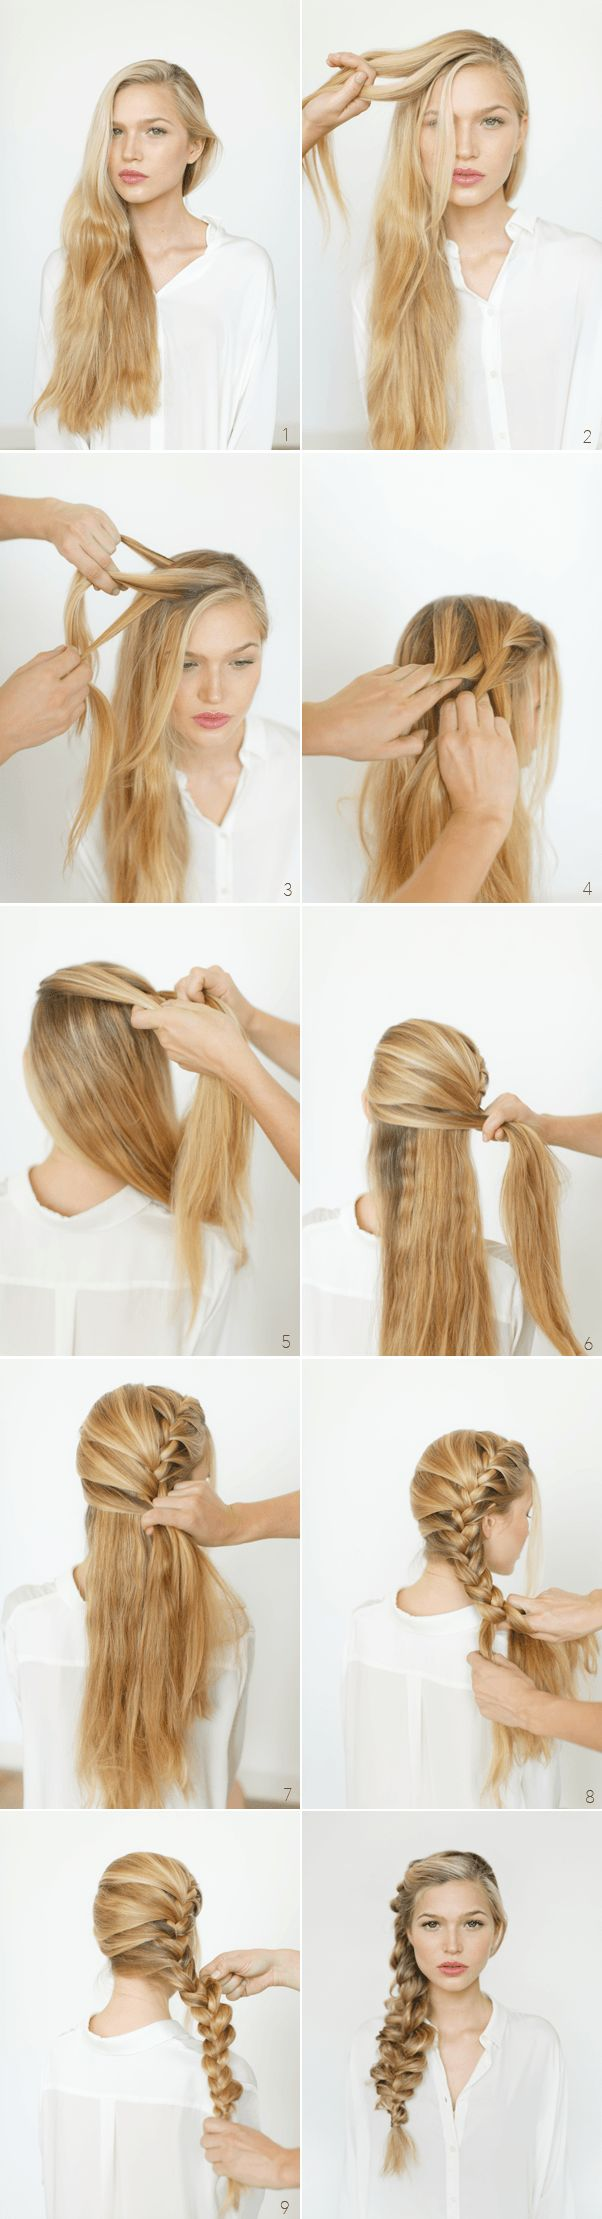 Step By Step Different Style Braids Tutorials